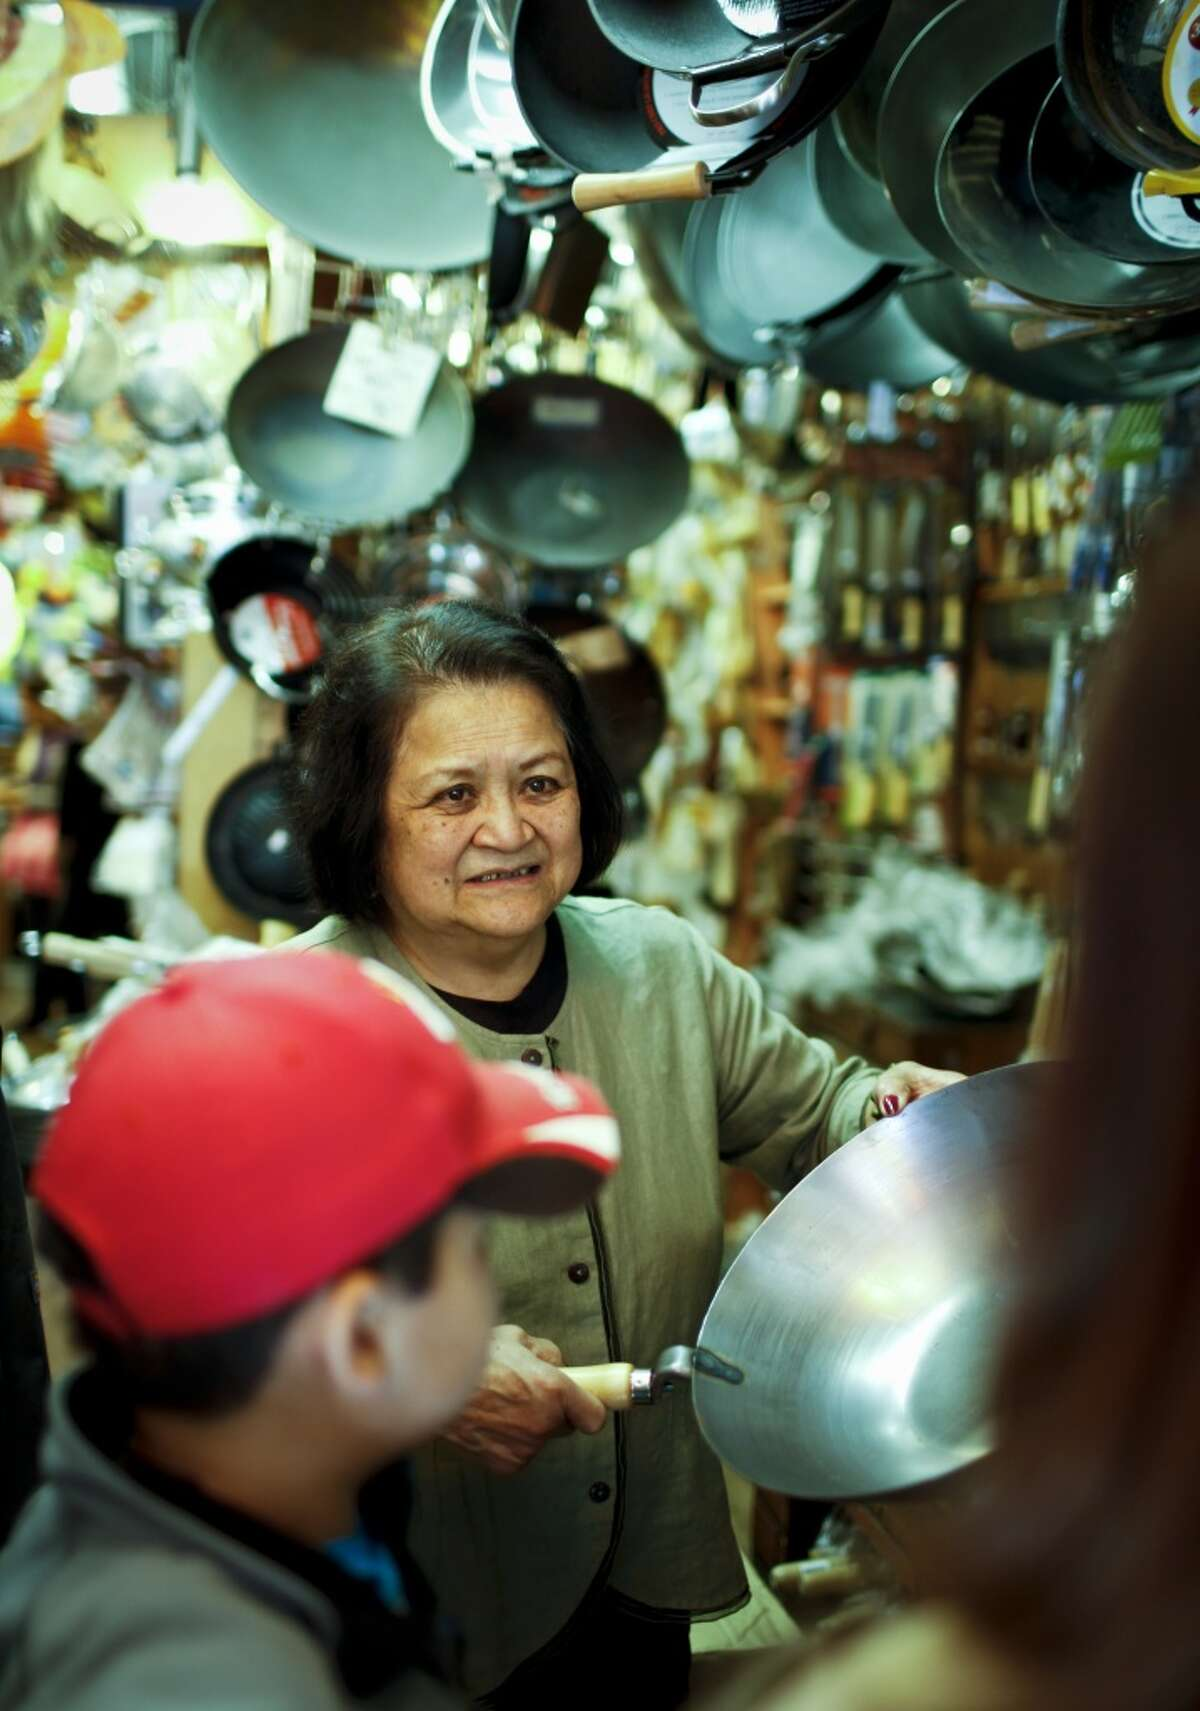 Tane Chan, the owner of Chinatown's Wok Shop since 1972 assists customers. She is the subject of a profile in the Chronicle's Food & Wine section.